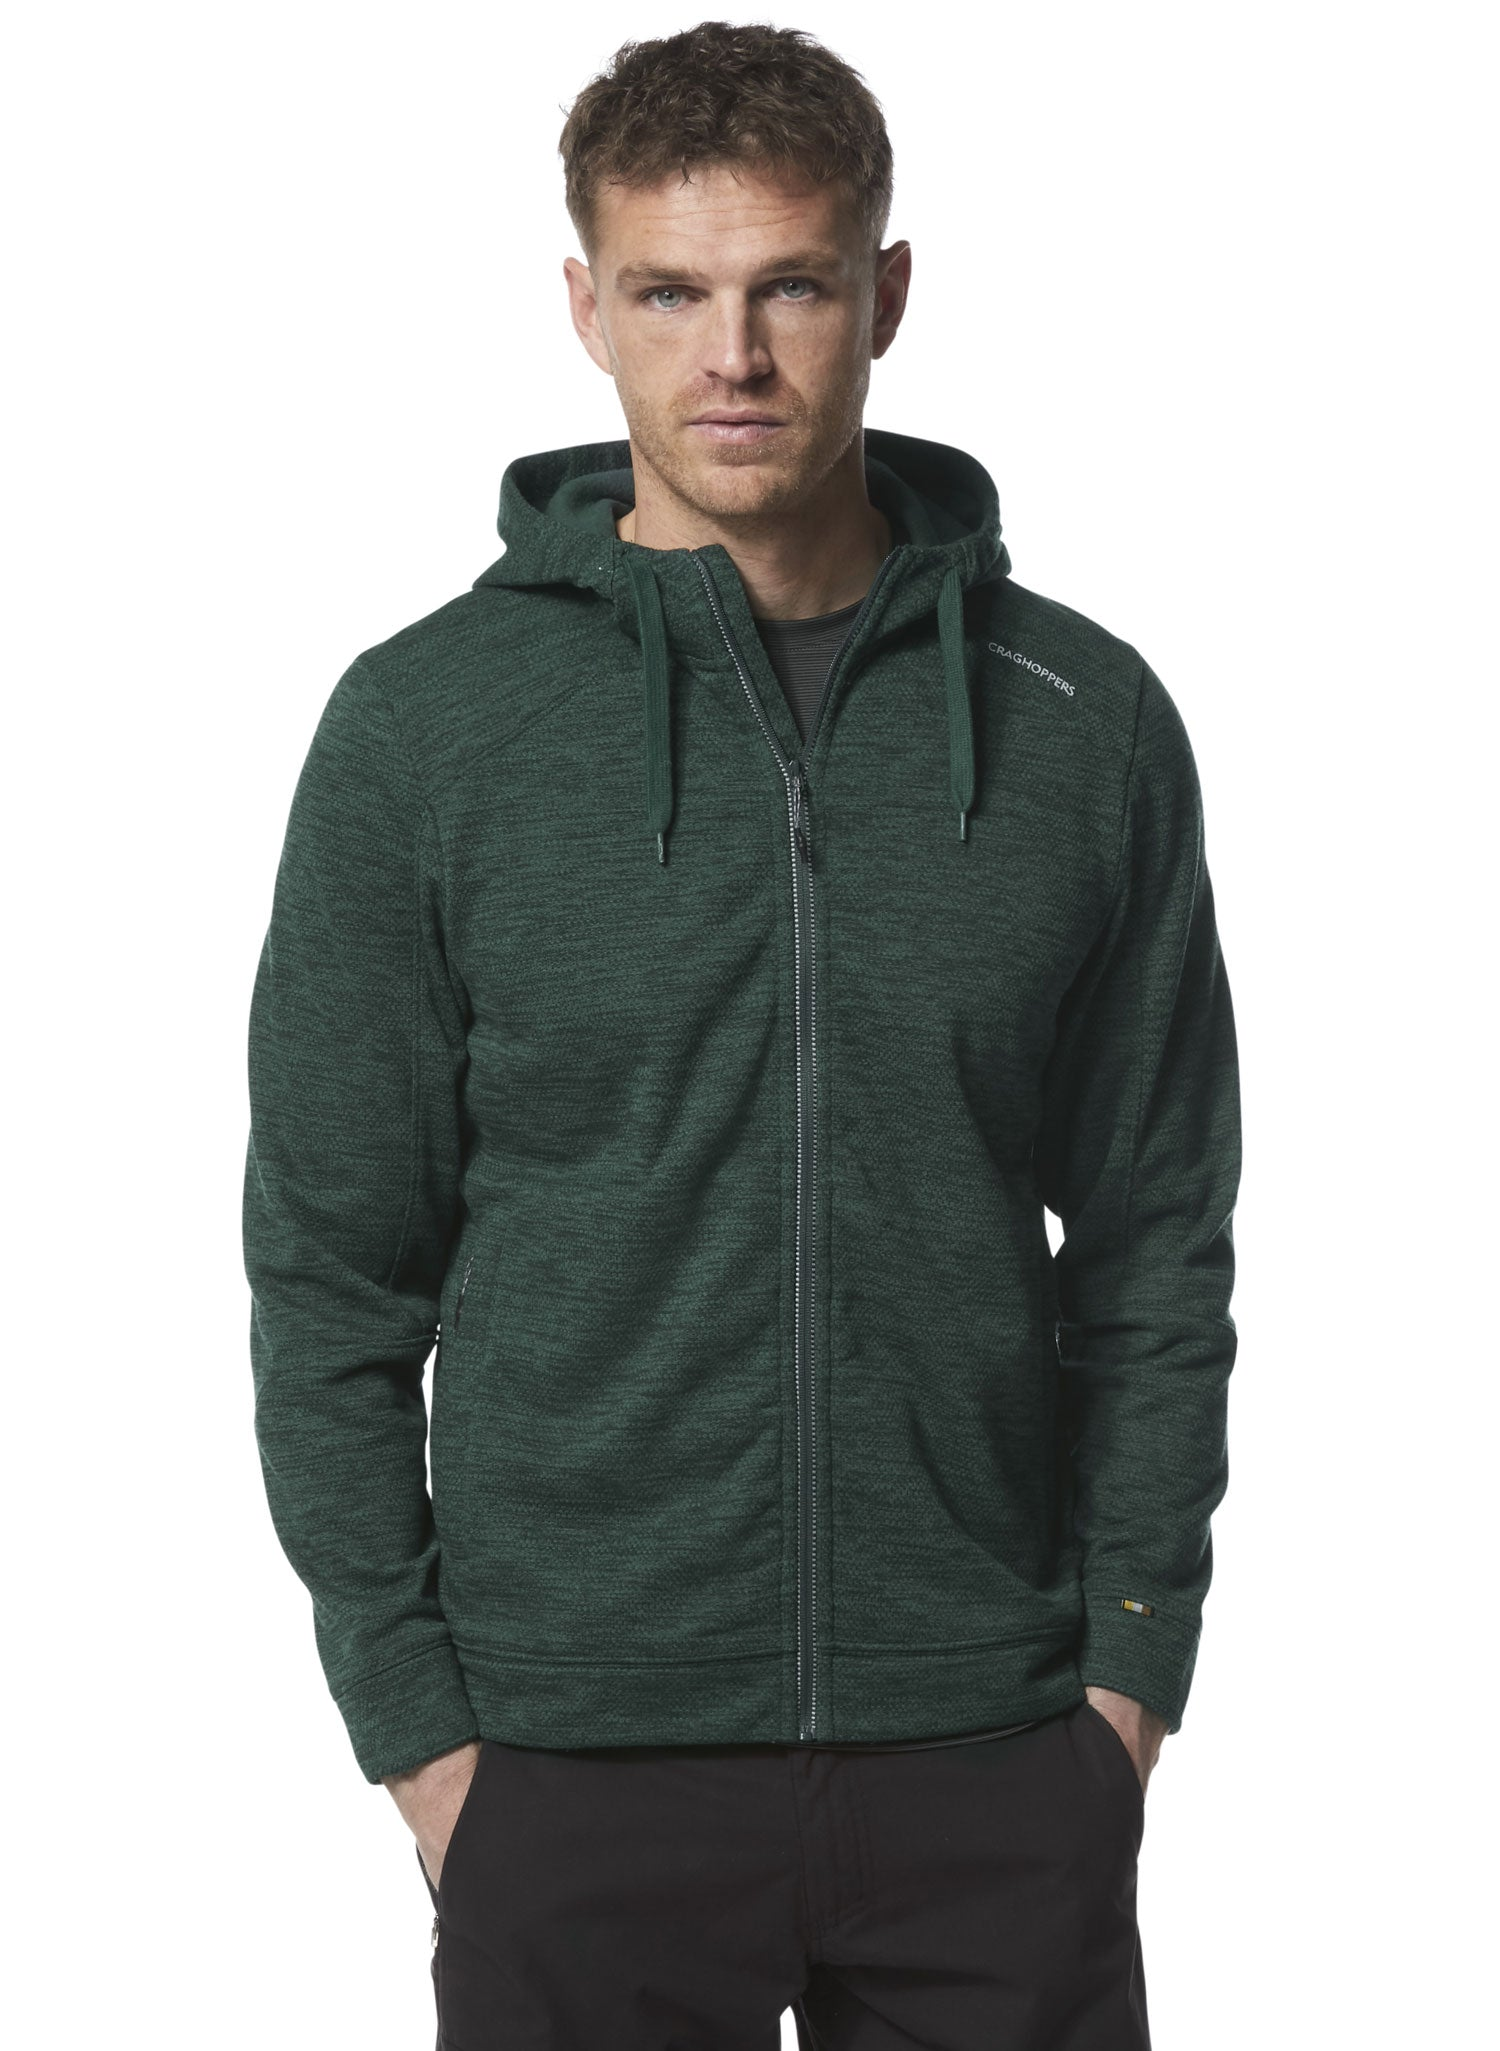 Man wearing Craghoppers Strata Hoodie in Fleece green